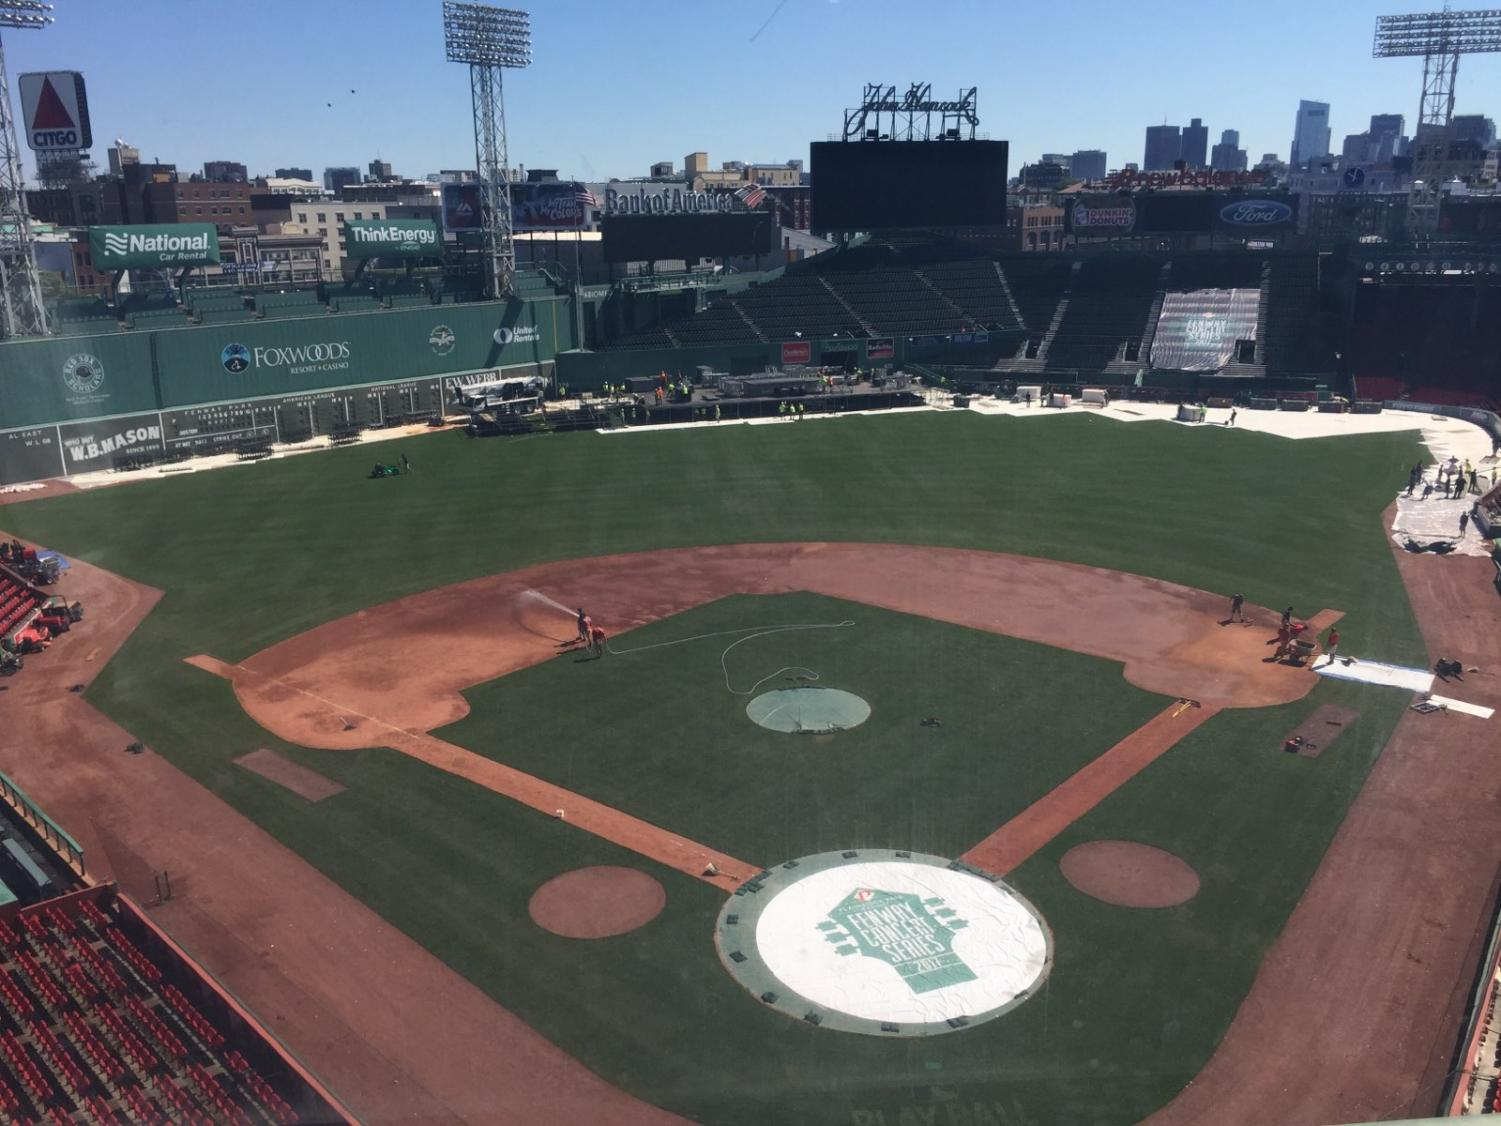 Workers at Fenway Park tearing down a stage the morning after a Paula Abdul/Boyz II Men/New Kids on the Block concert.